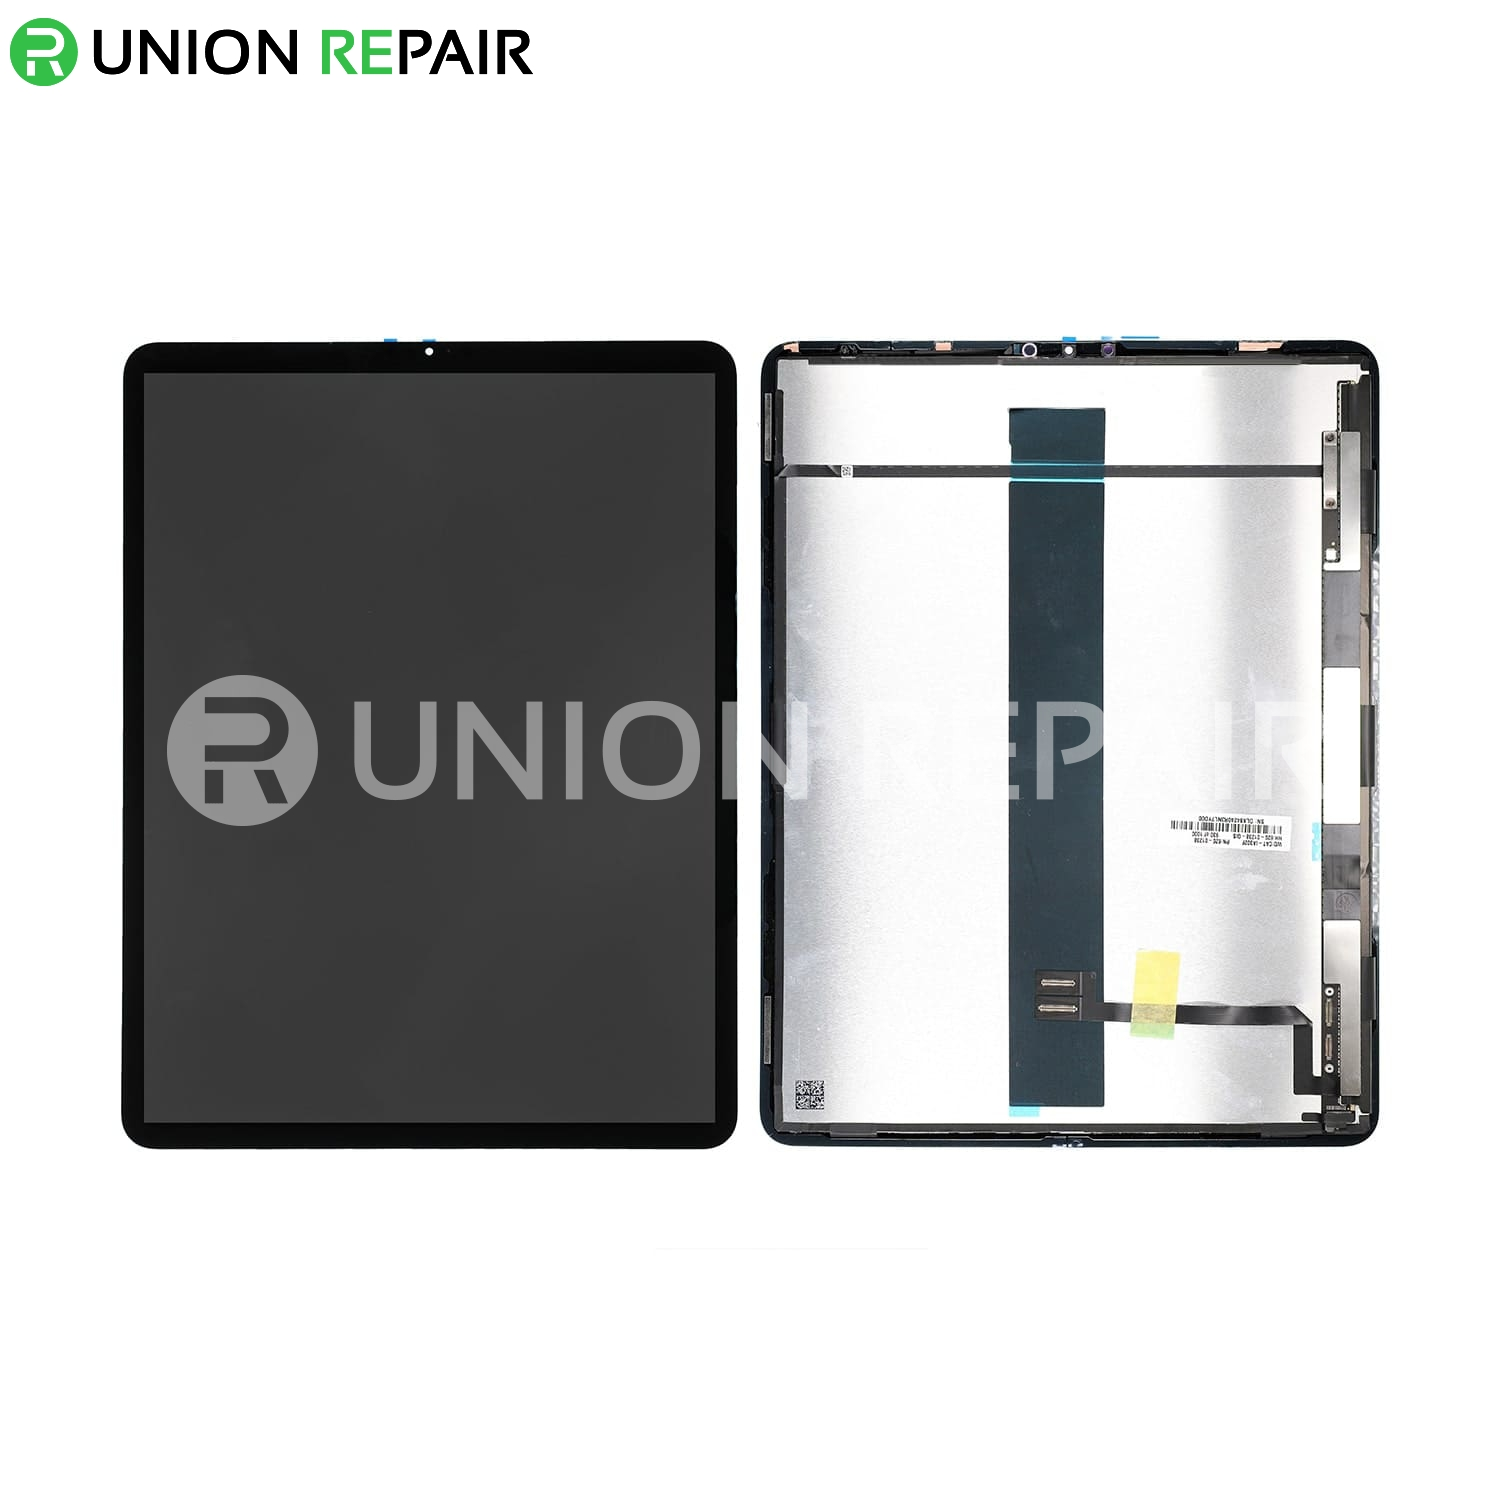 "Display LCD Screen Replacement Parts for Ipad Pro 10.5/"" Black Assembly Tool"